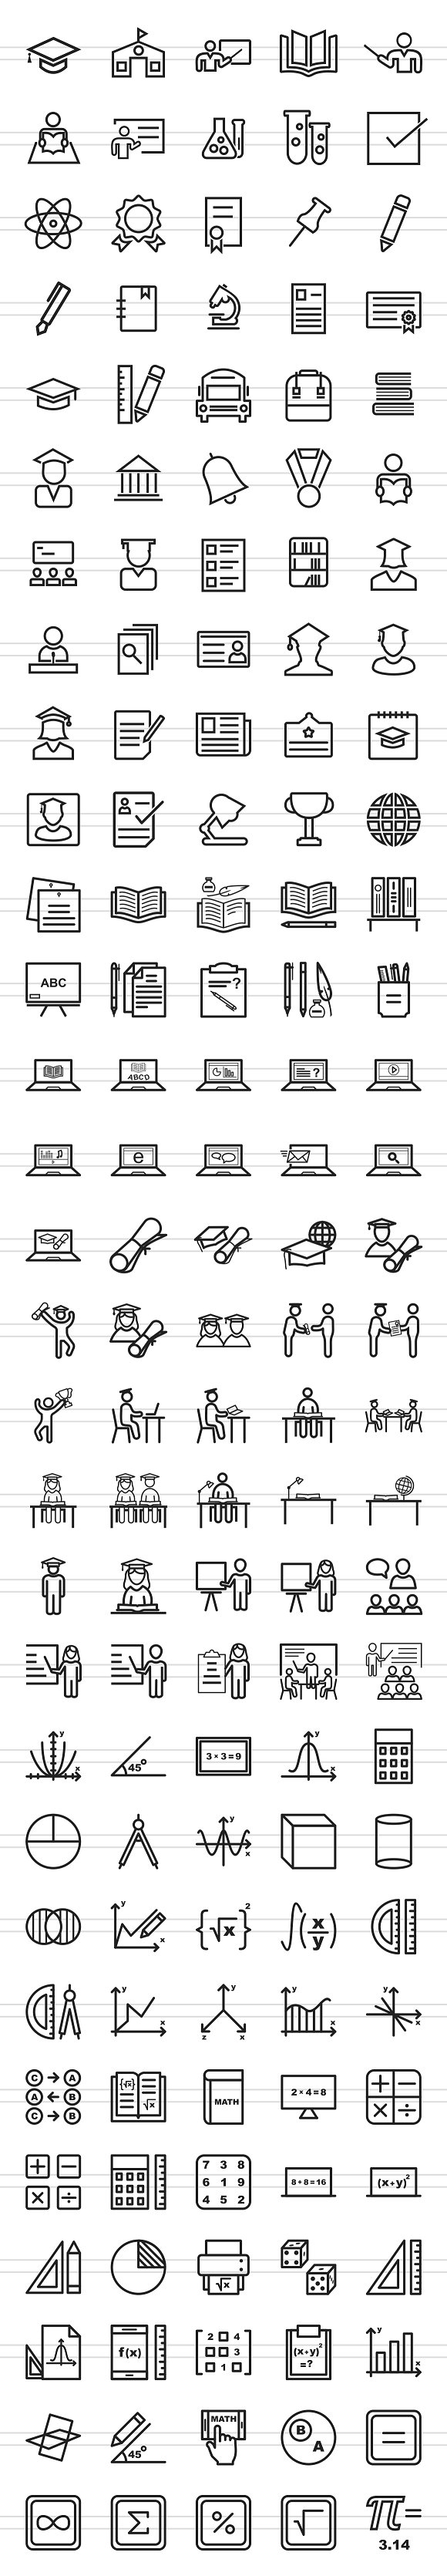 150 Academics Line Icons in Graphics - product preview 1